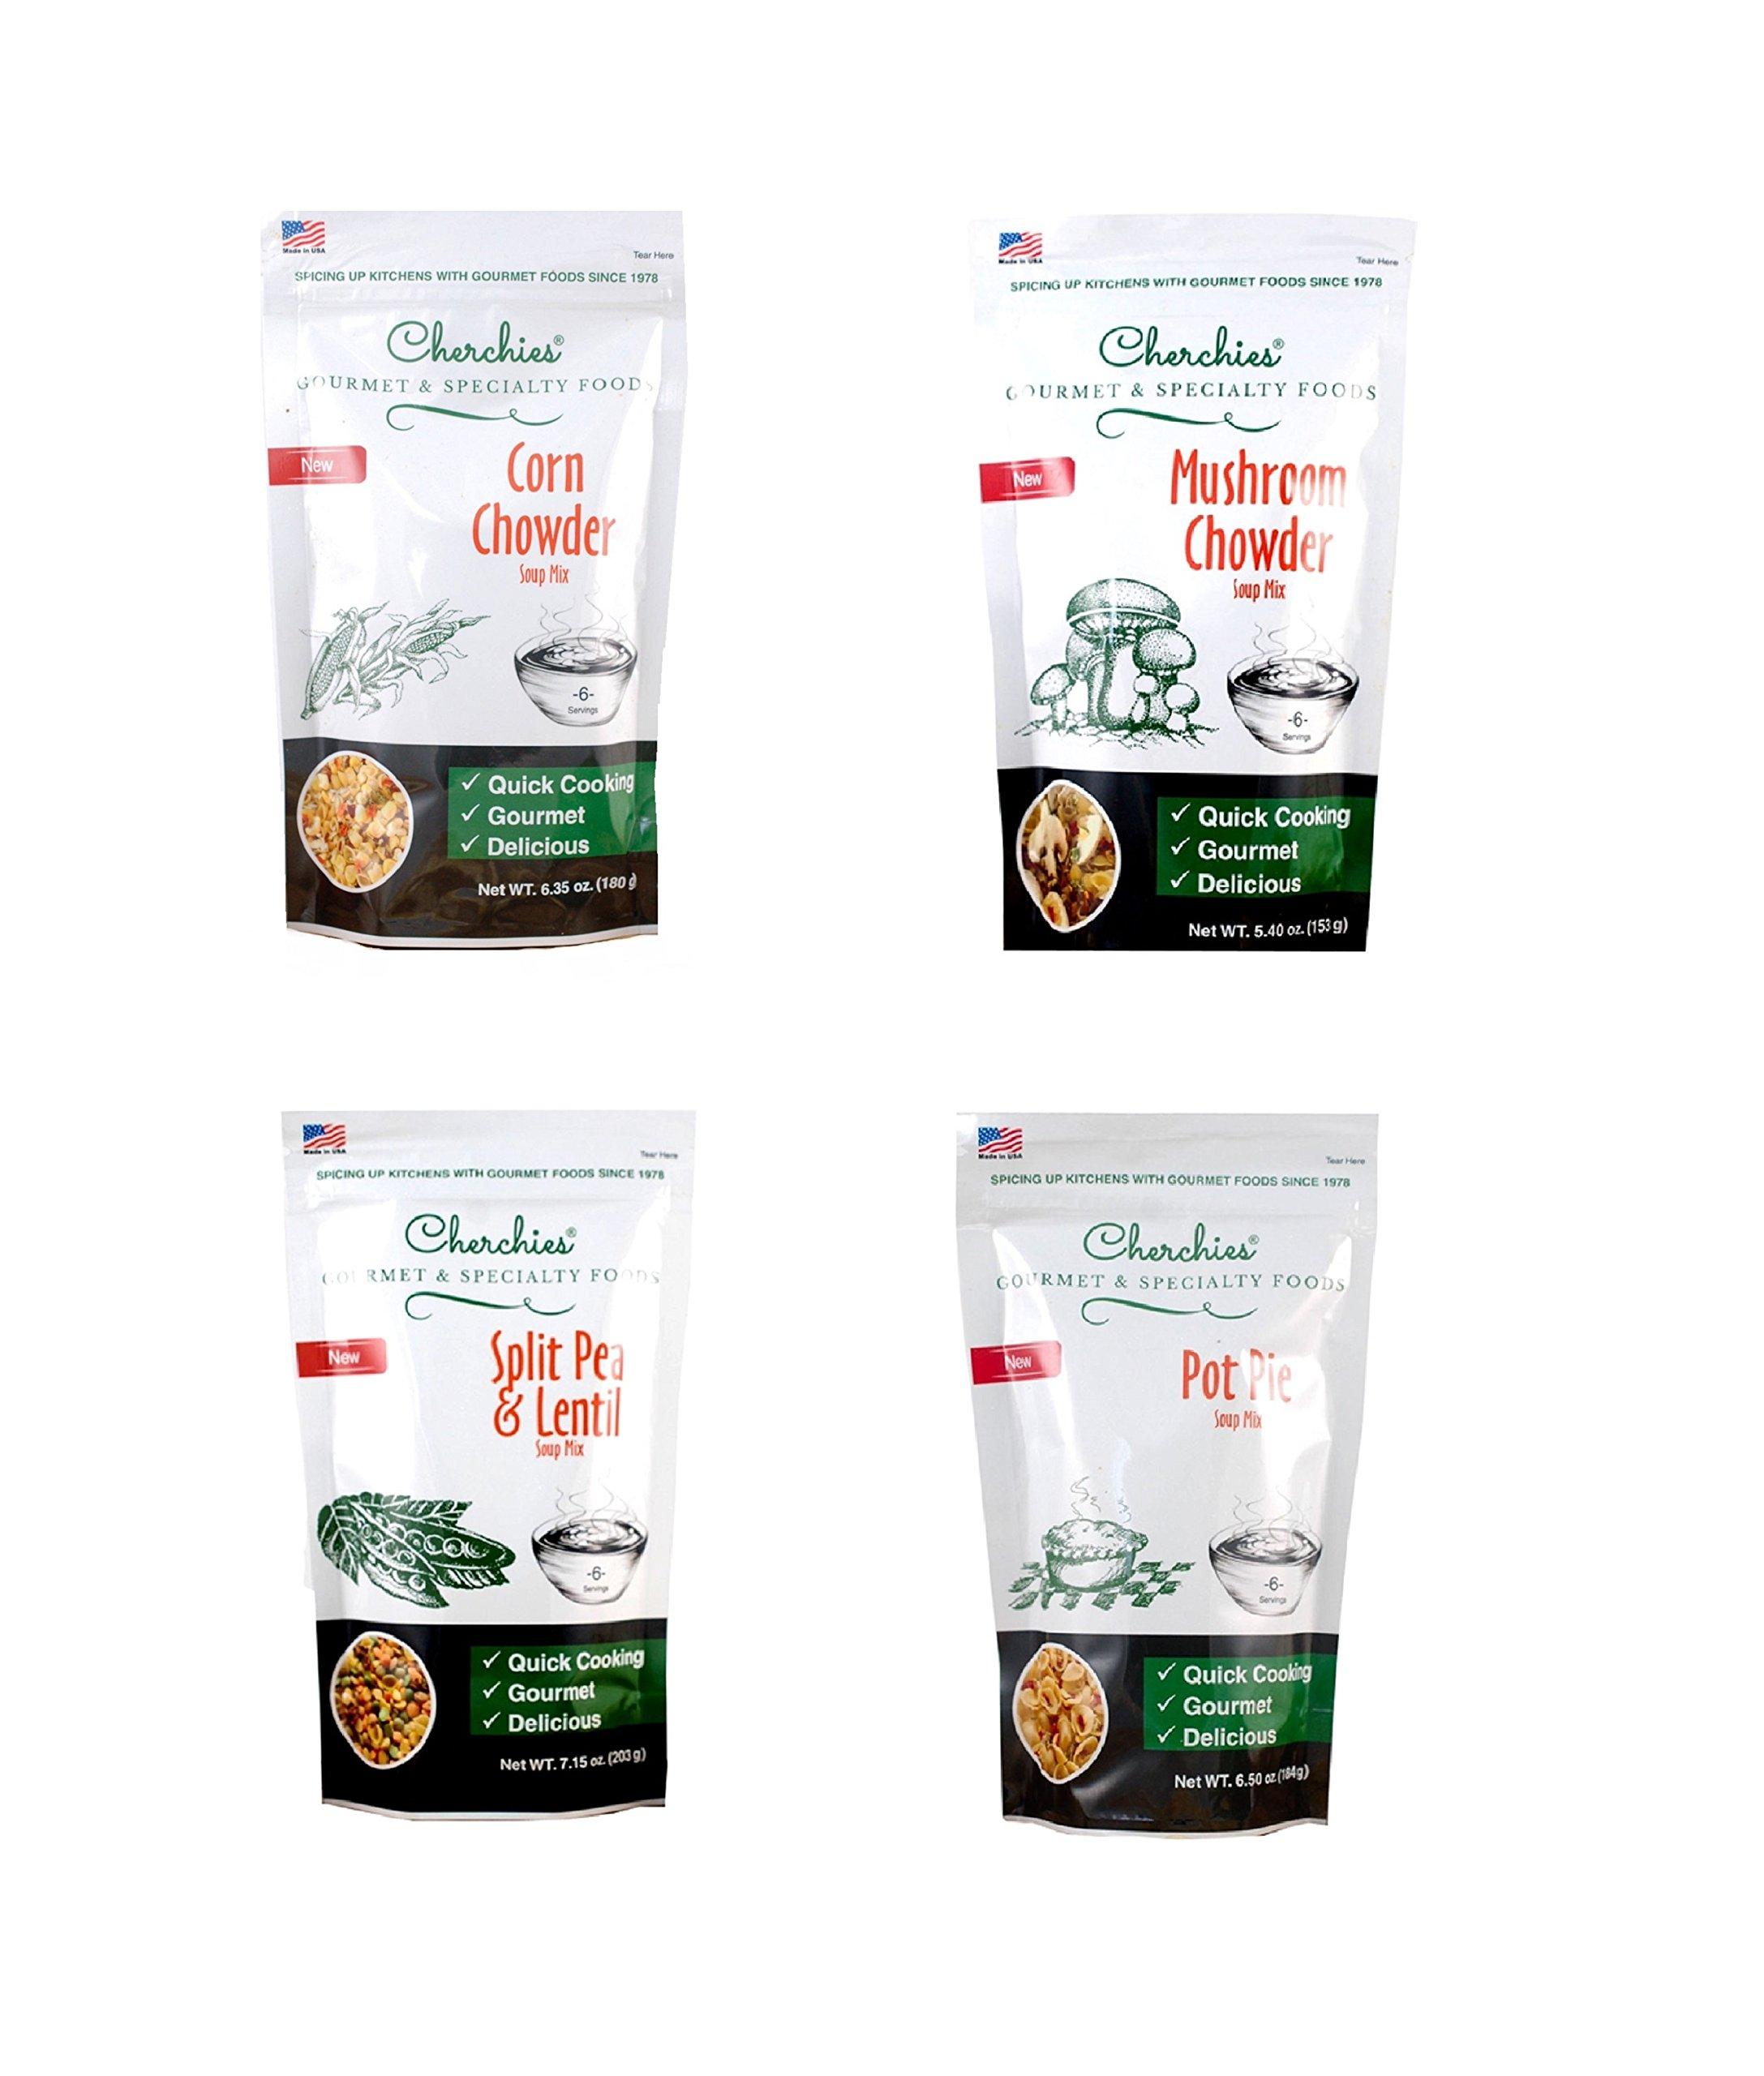 Cherchies Classic Home Comfort Soup Collection